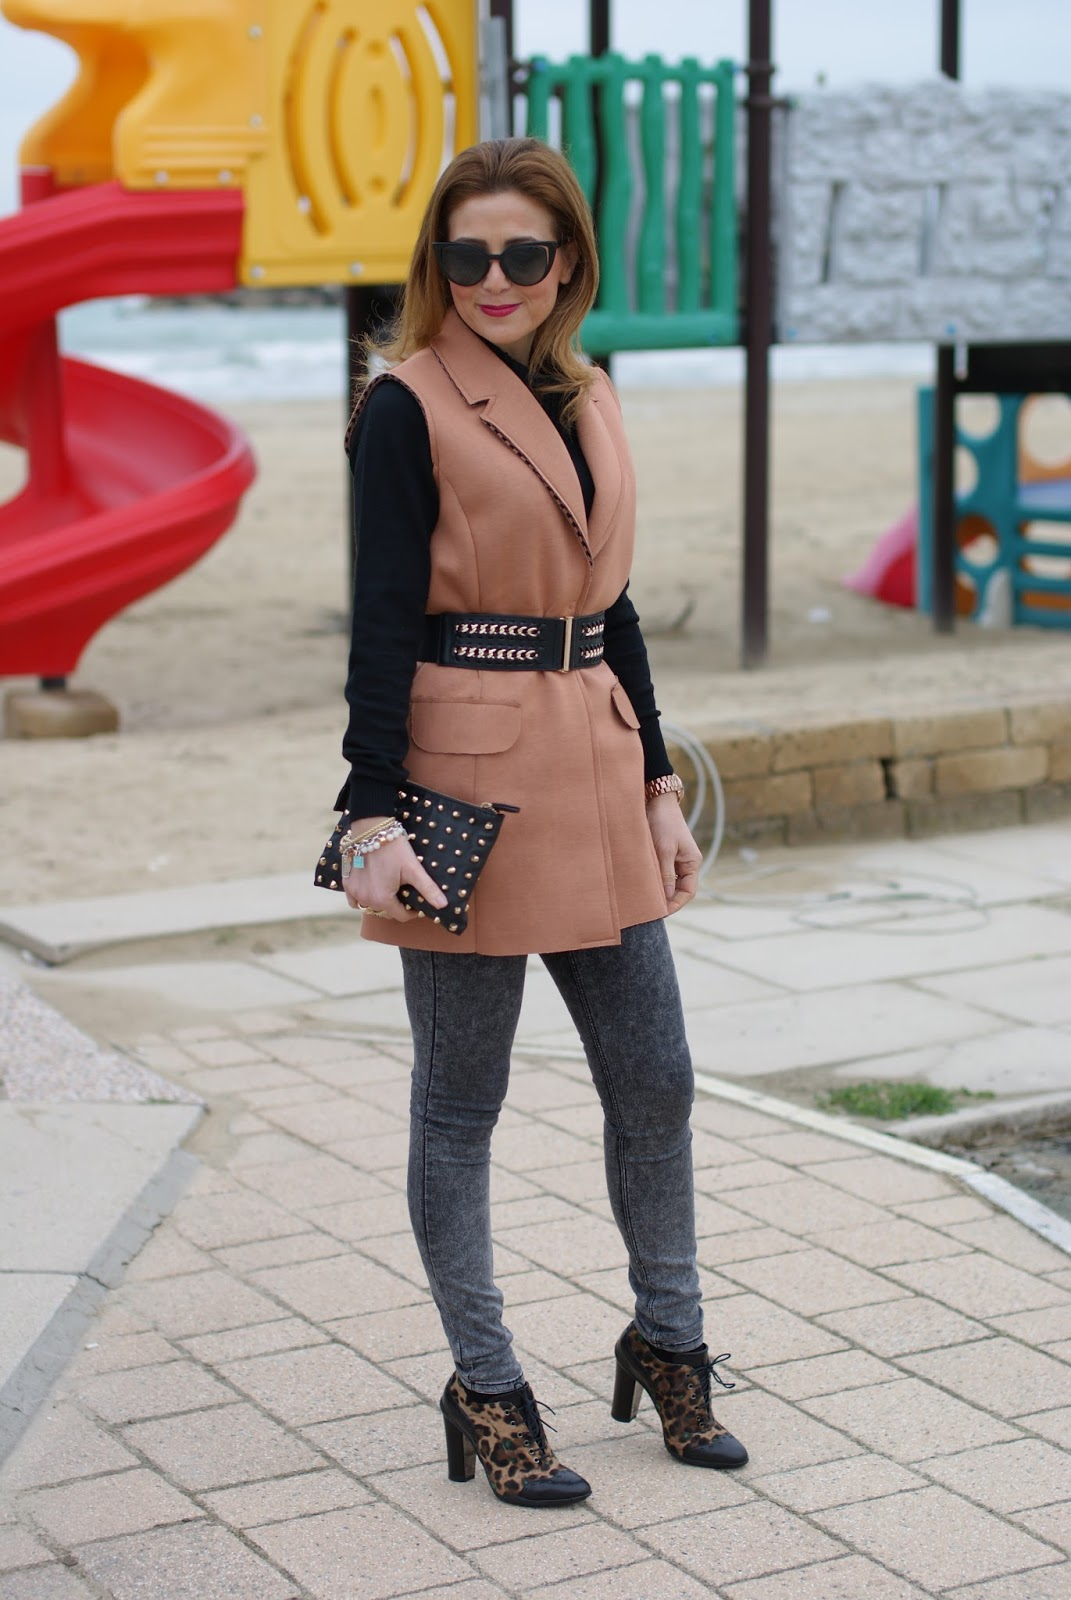 How to spice up a simple outfit with a camel sleeveless jacket, Fendi sunglasses from Giarre.com and skinny jeans on Fashion and Cookies fashion blog, fashion blogger style